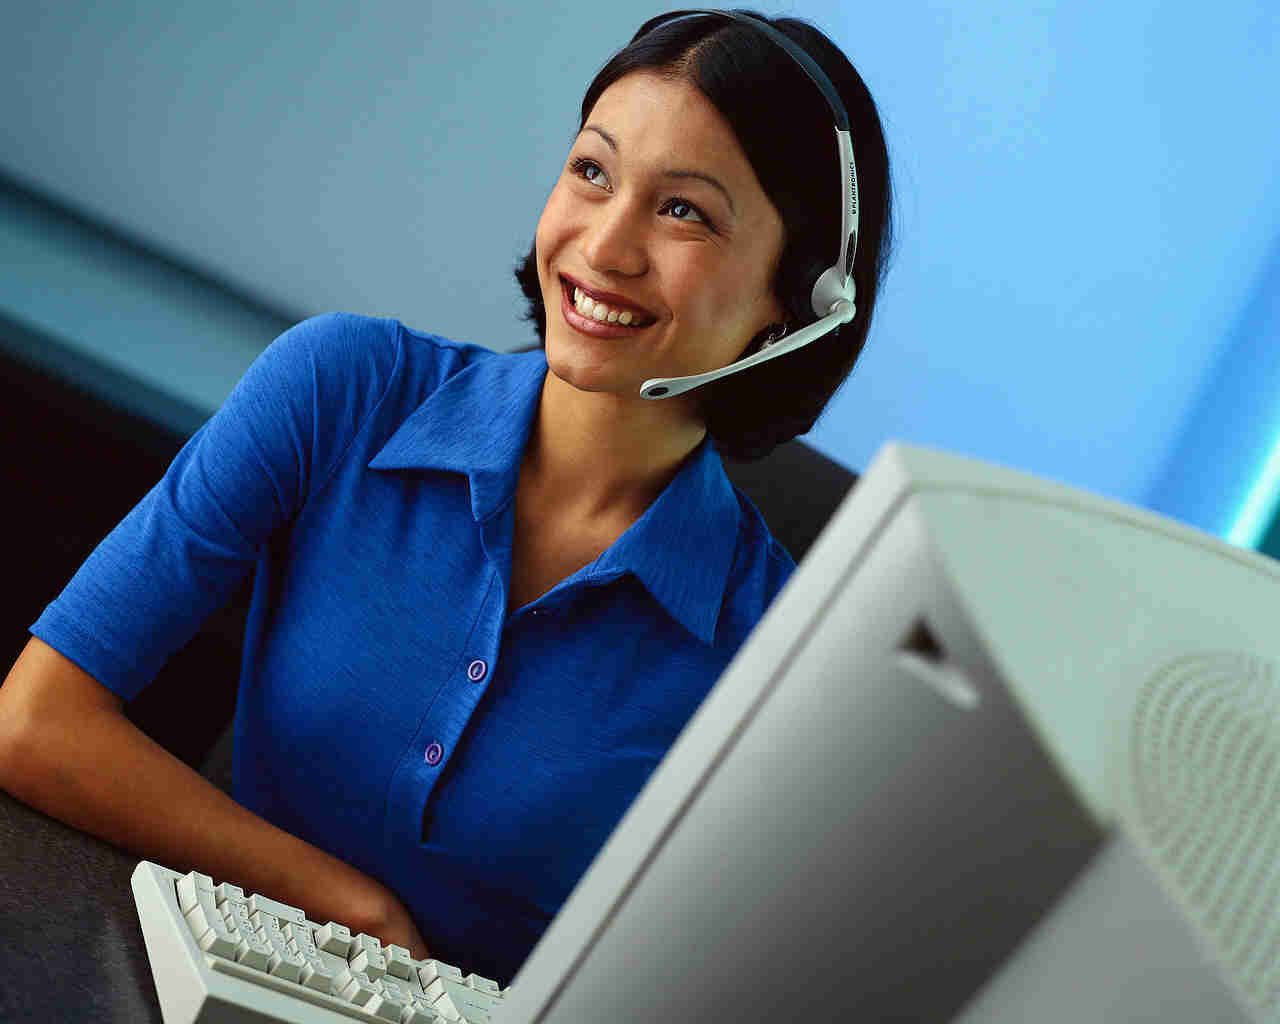 Call us for teleconferencing